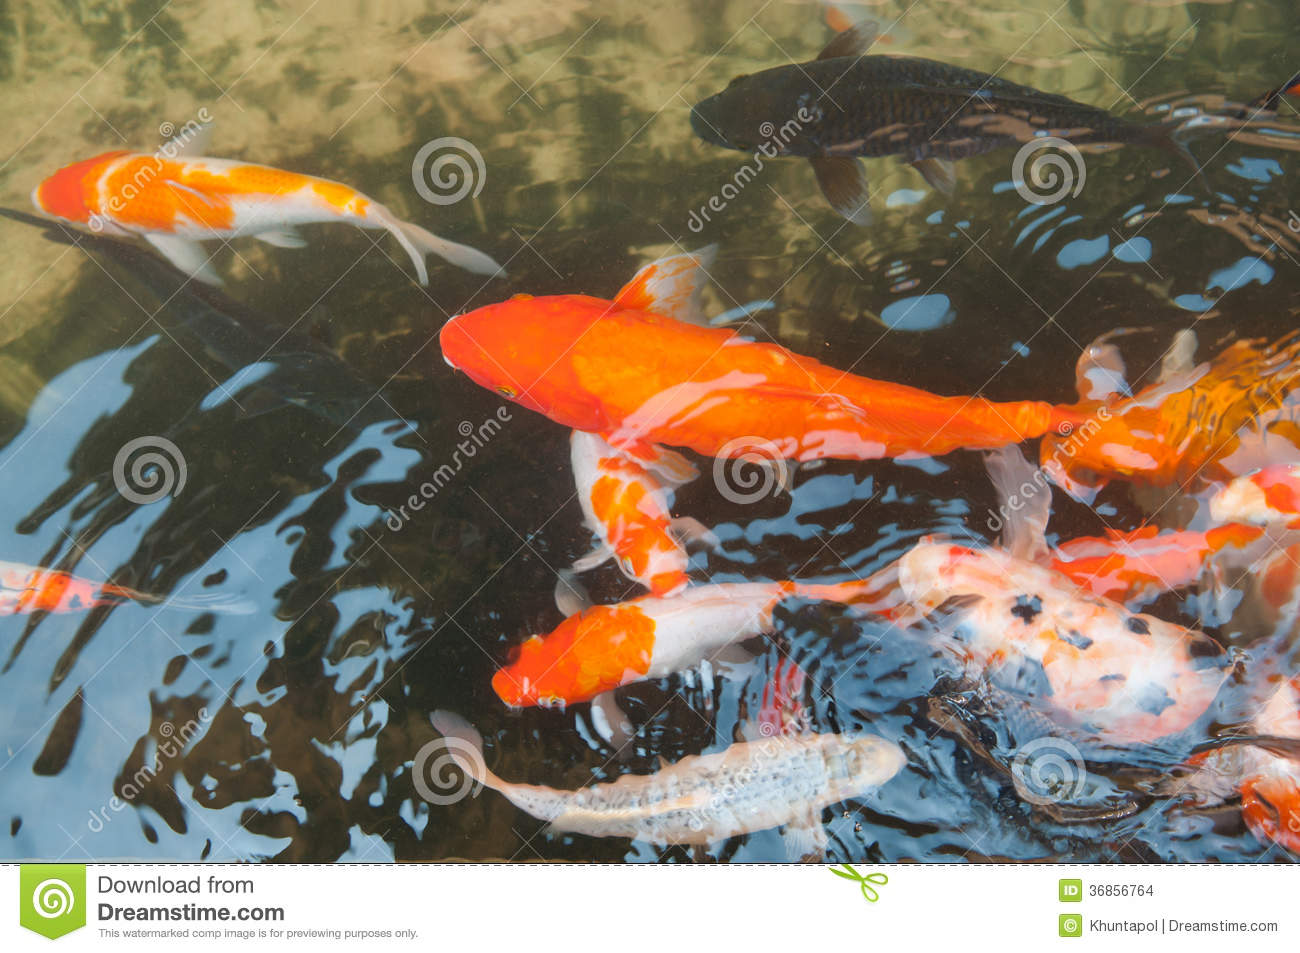 Koi or carp chinese fish in water stock images image for Koi fish water